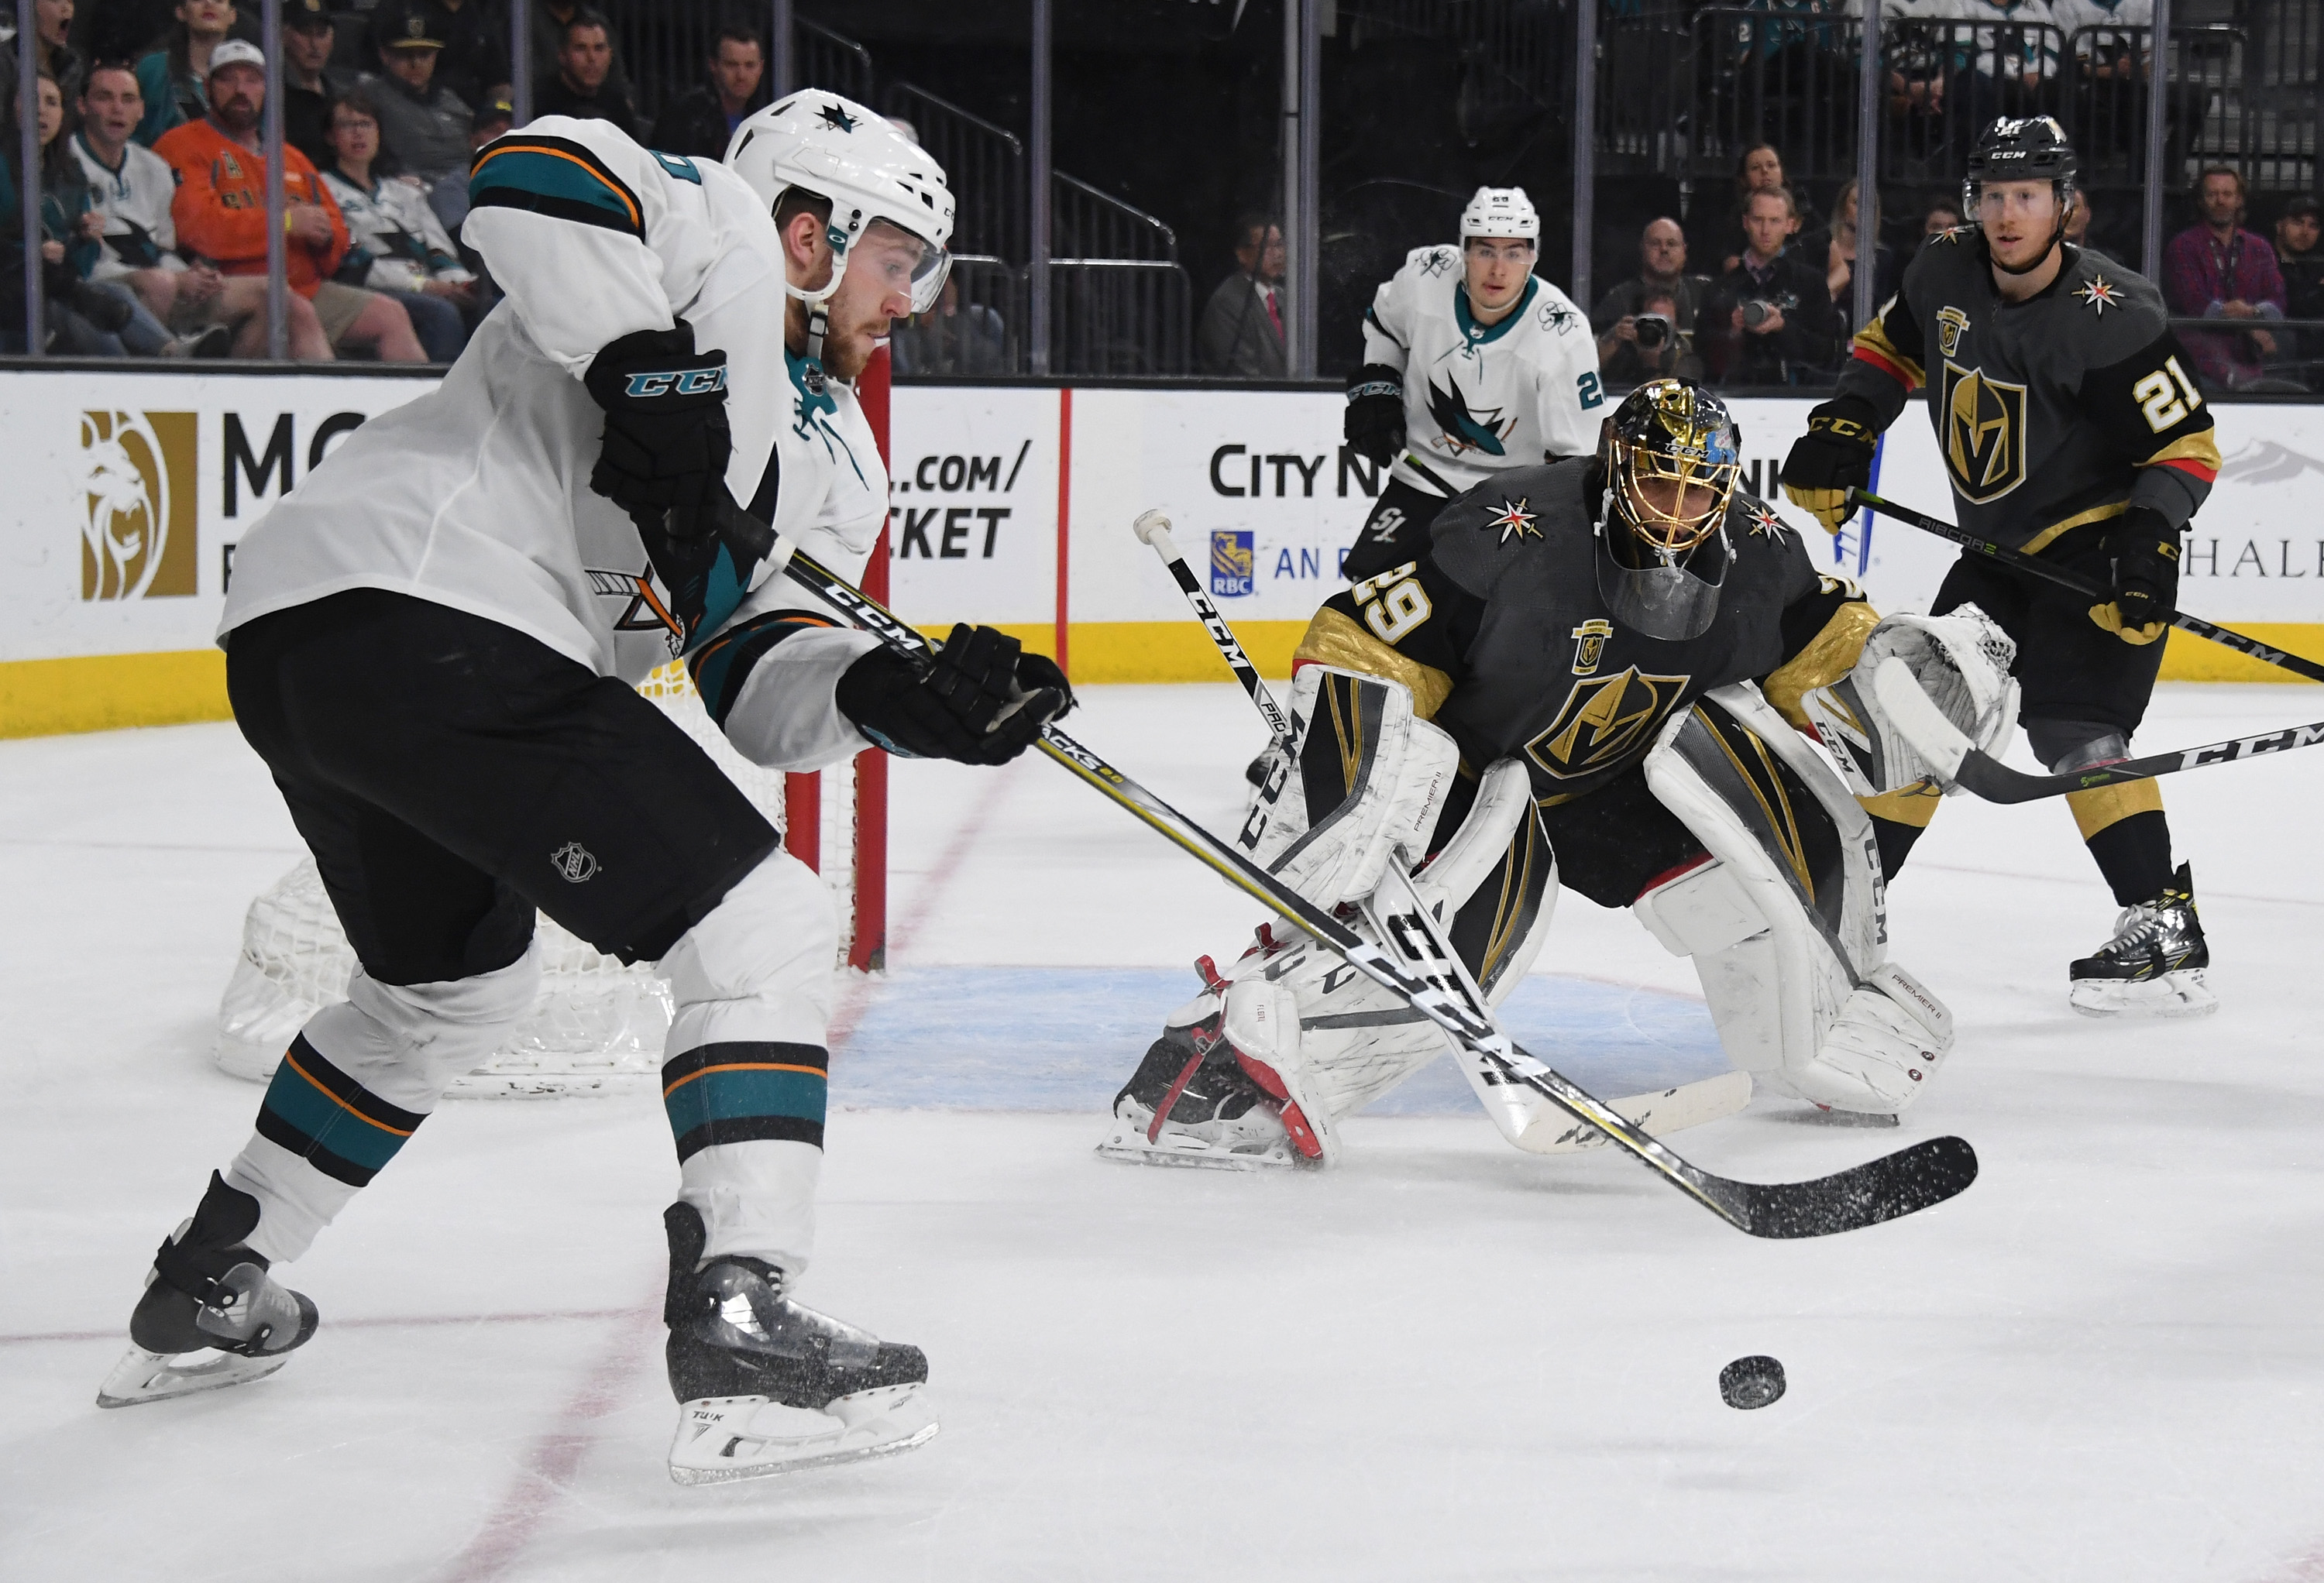 LAS VEGAS, NV - MARCH 31: Chris Tierney #50 of the San Jose Sharks tries to get a shot off on Marc-Andre Fleury #29 of the Vegas Golden Knights in the first period of their game at T-Mobile Arena on March 31, 2018 in Las Vegas, Nevada.